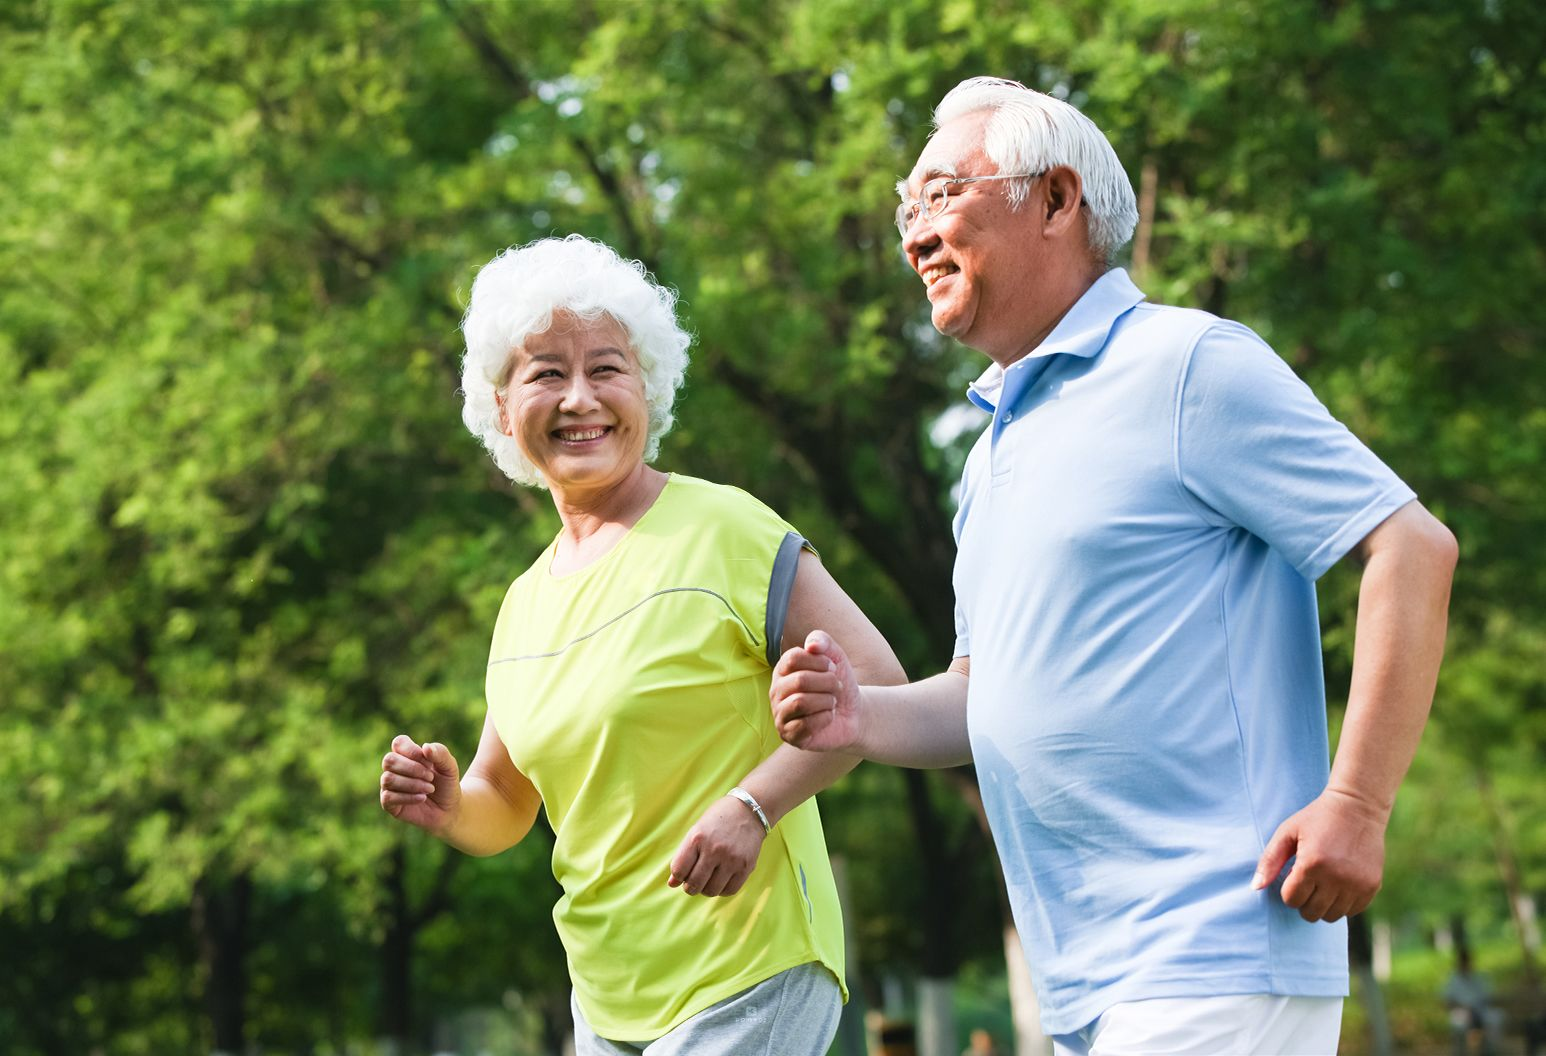 An elderly woman and man out jogging in a bright wooded area.